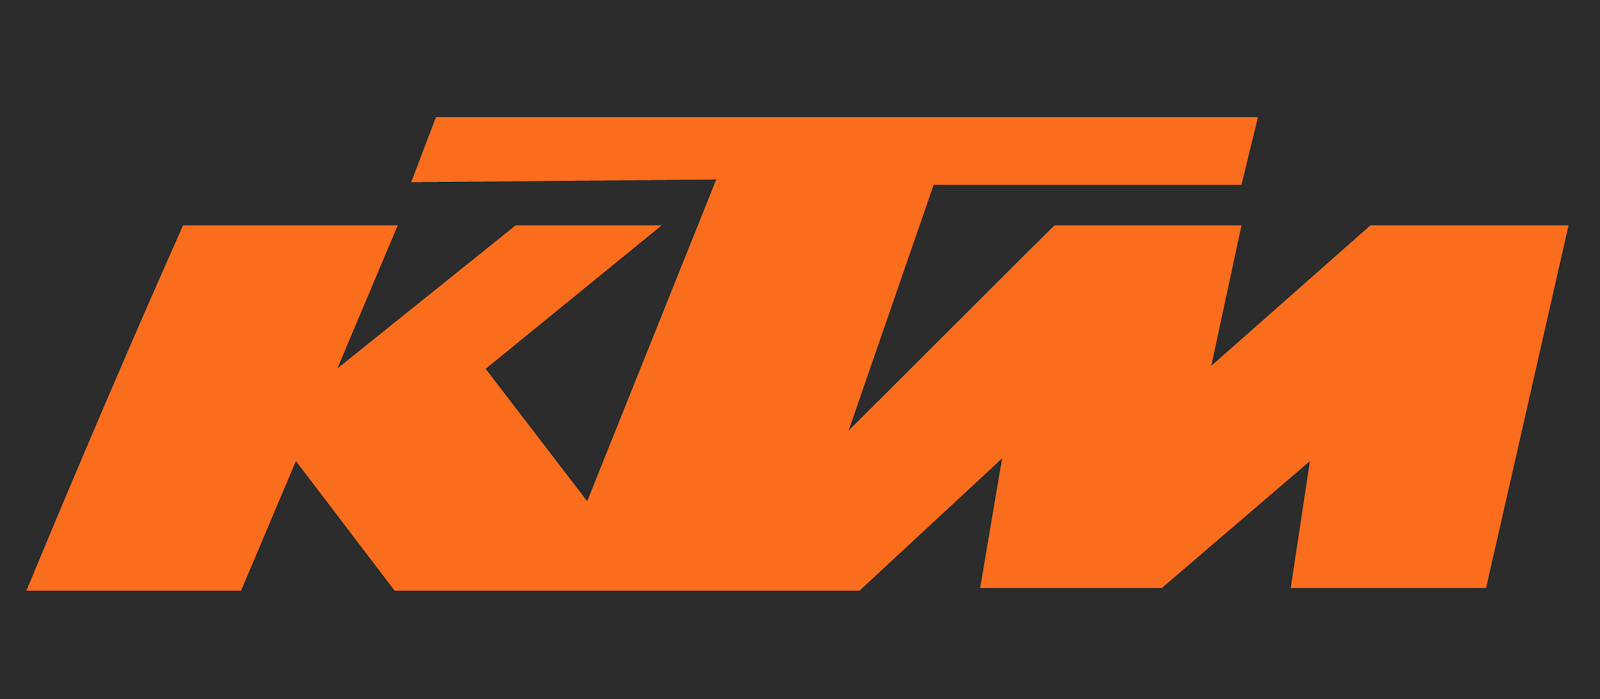 Ktm Logo Hd Wallpapers Wallpaper Cave 1036069 Png